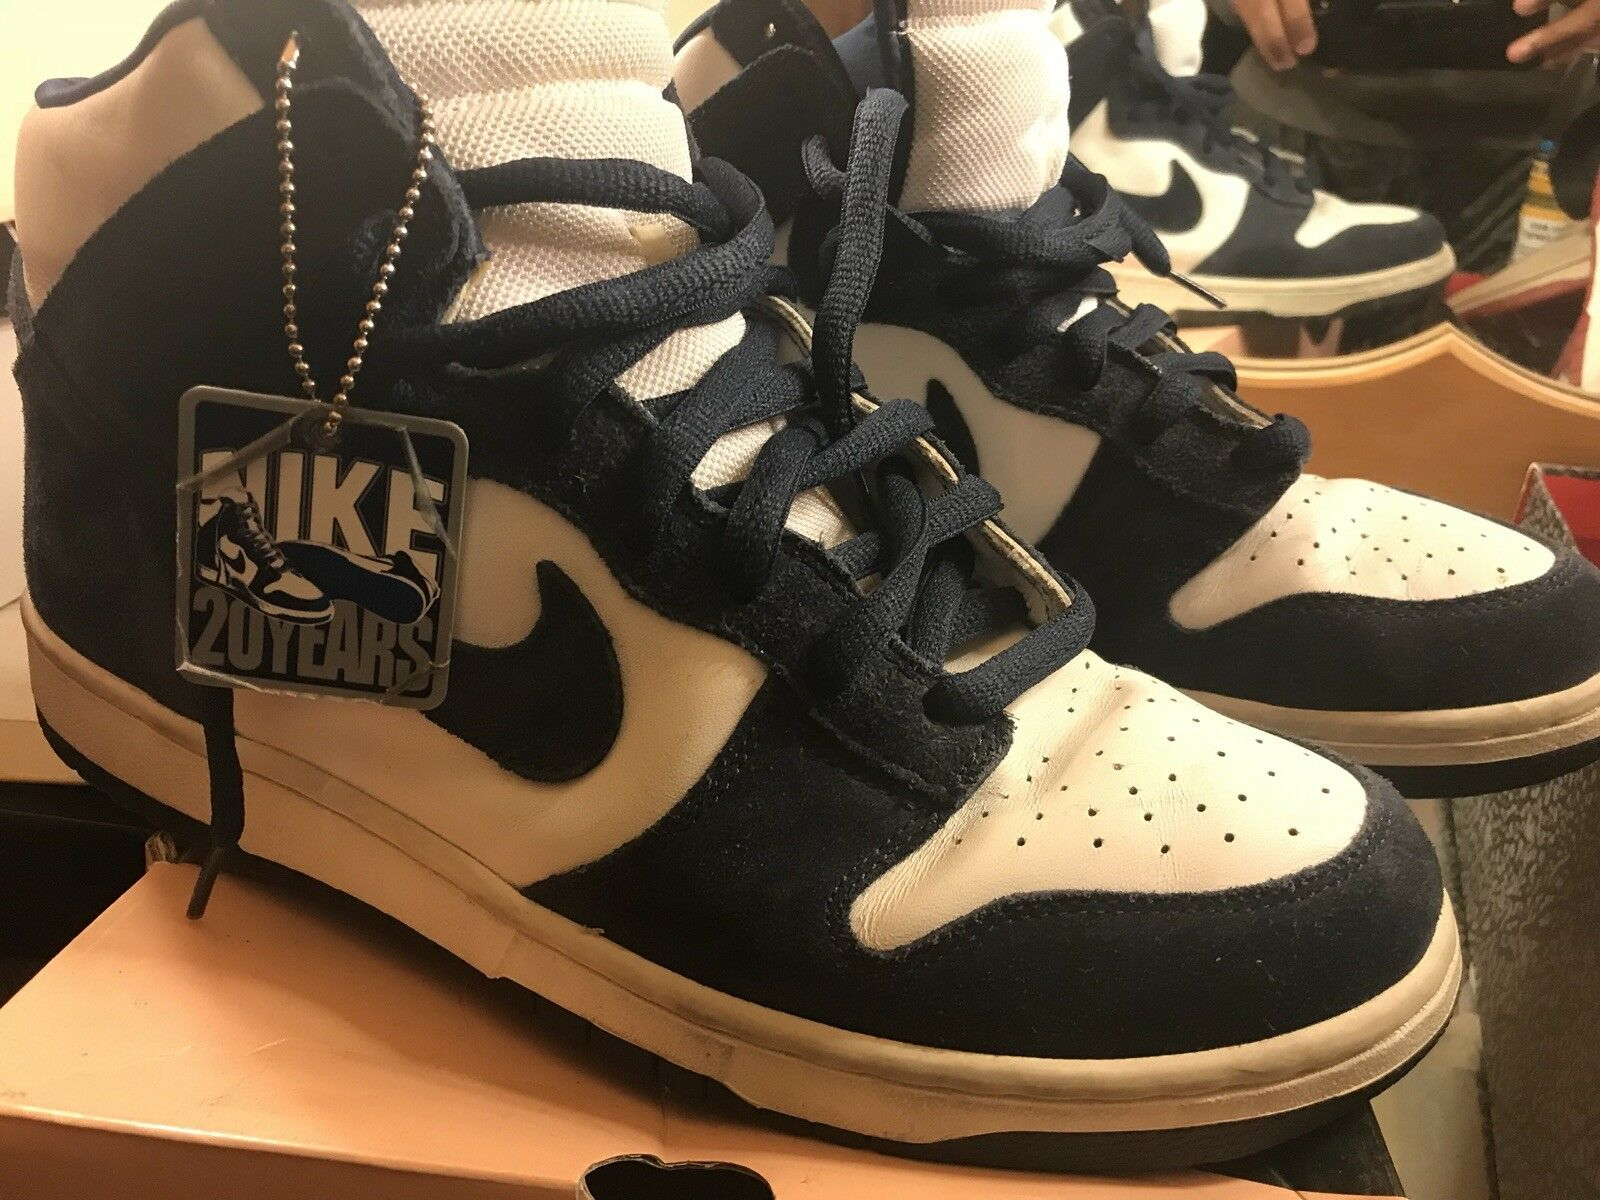 Nike SB Be True To Your School Size 12 Villanova Shoes 7/10